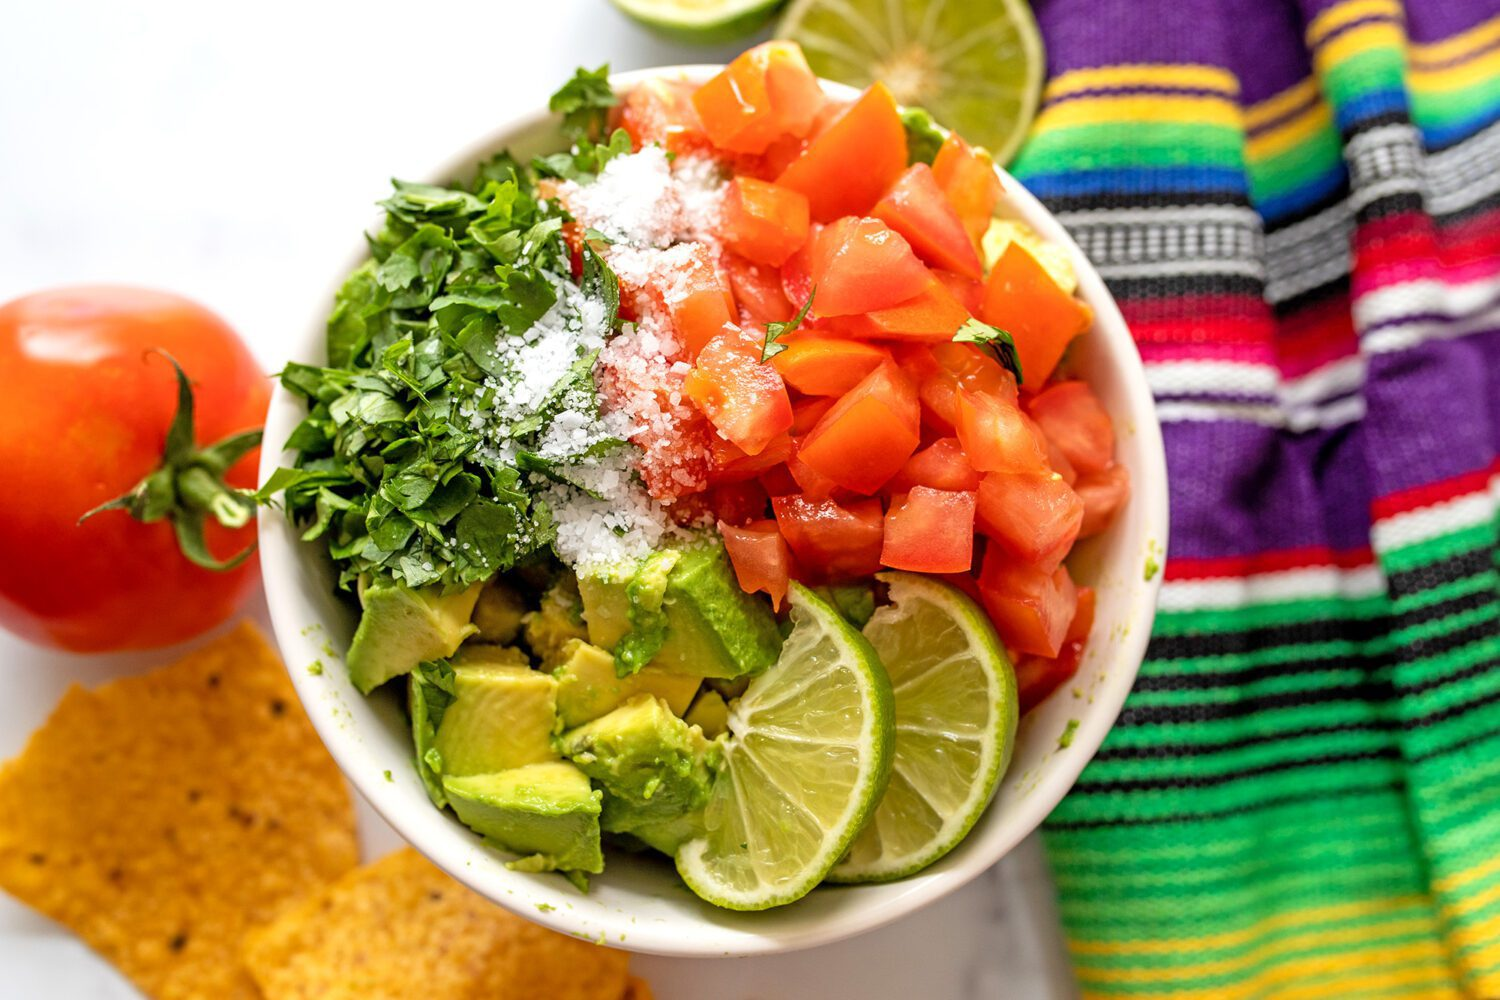 cilantro, tomatoes, avocado and lime